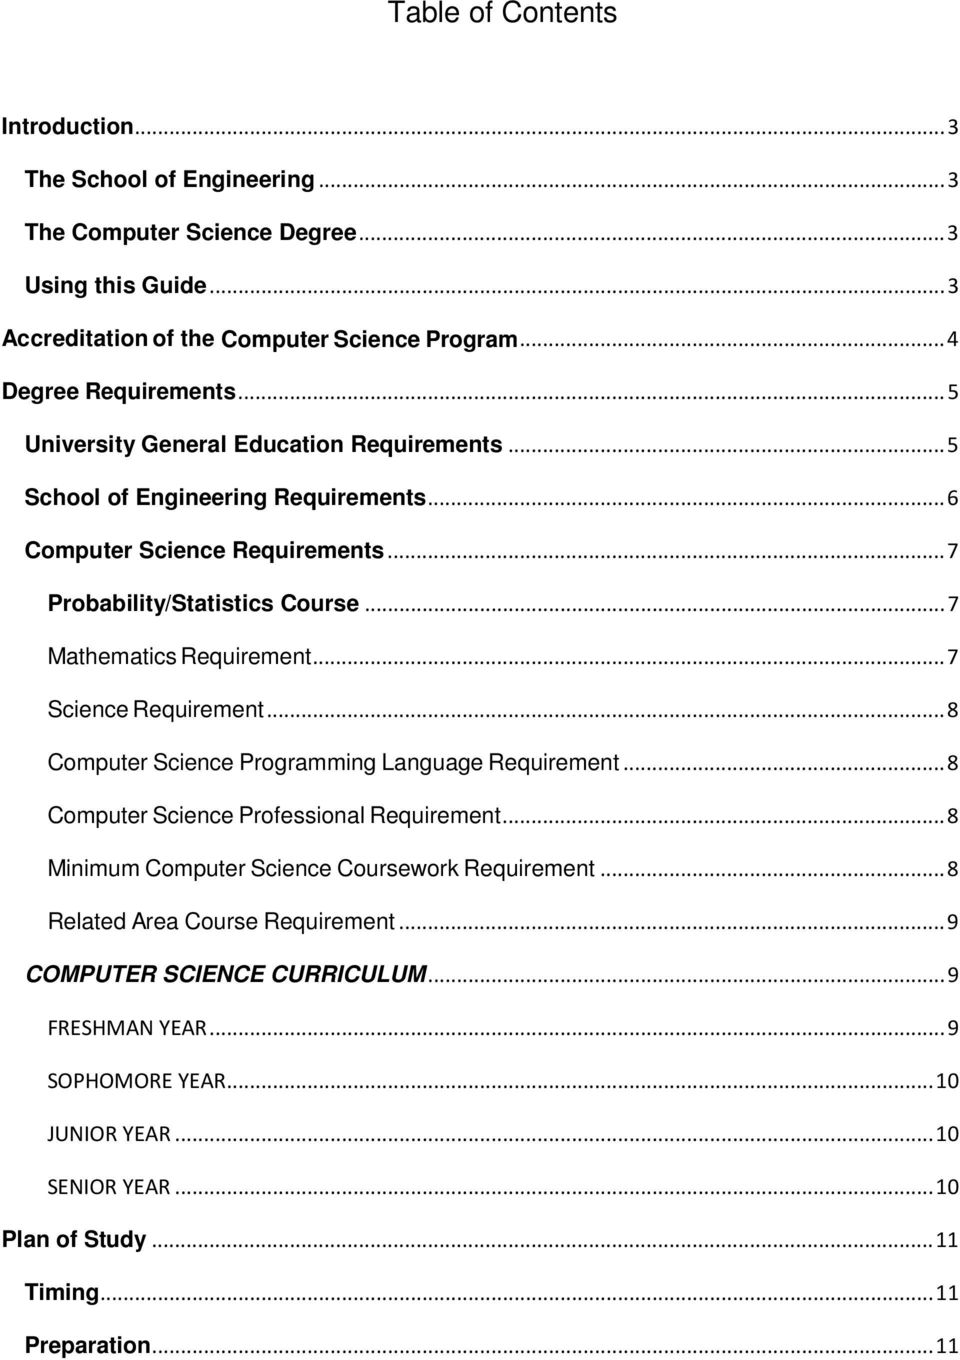 .. 7 Mathematics Requirement... 7 Science Requirement... 8 Computer Science Programming Language Requirement... 8 Computer Science Professional Requirement.